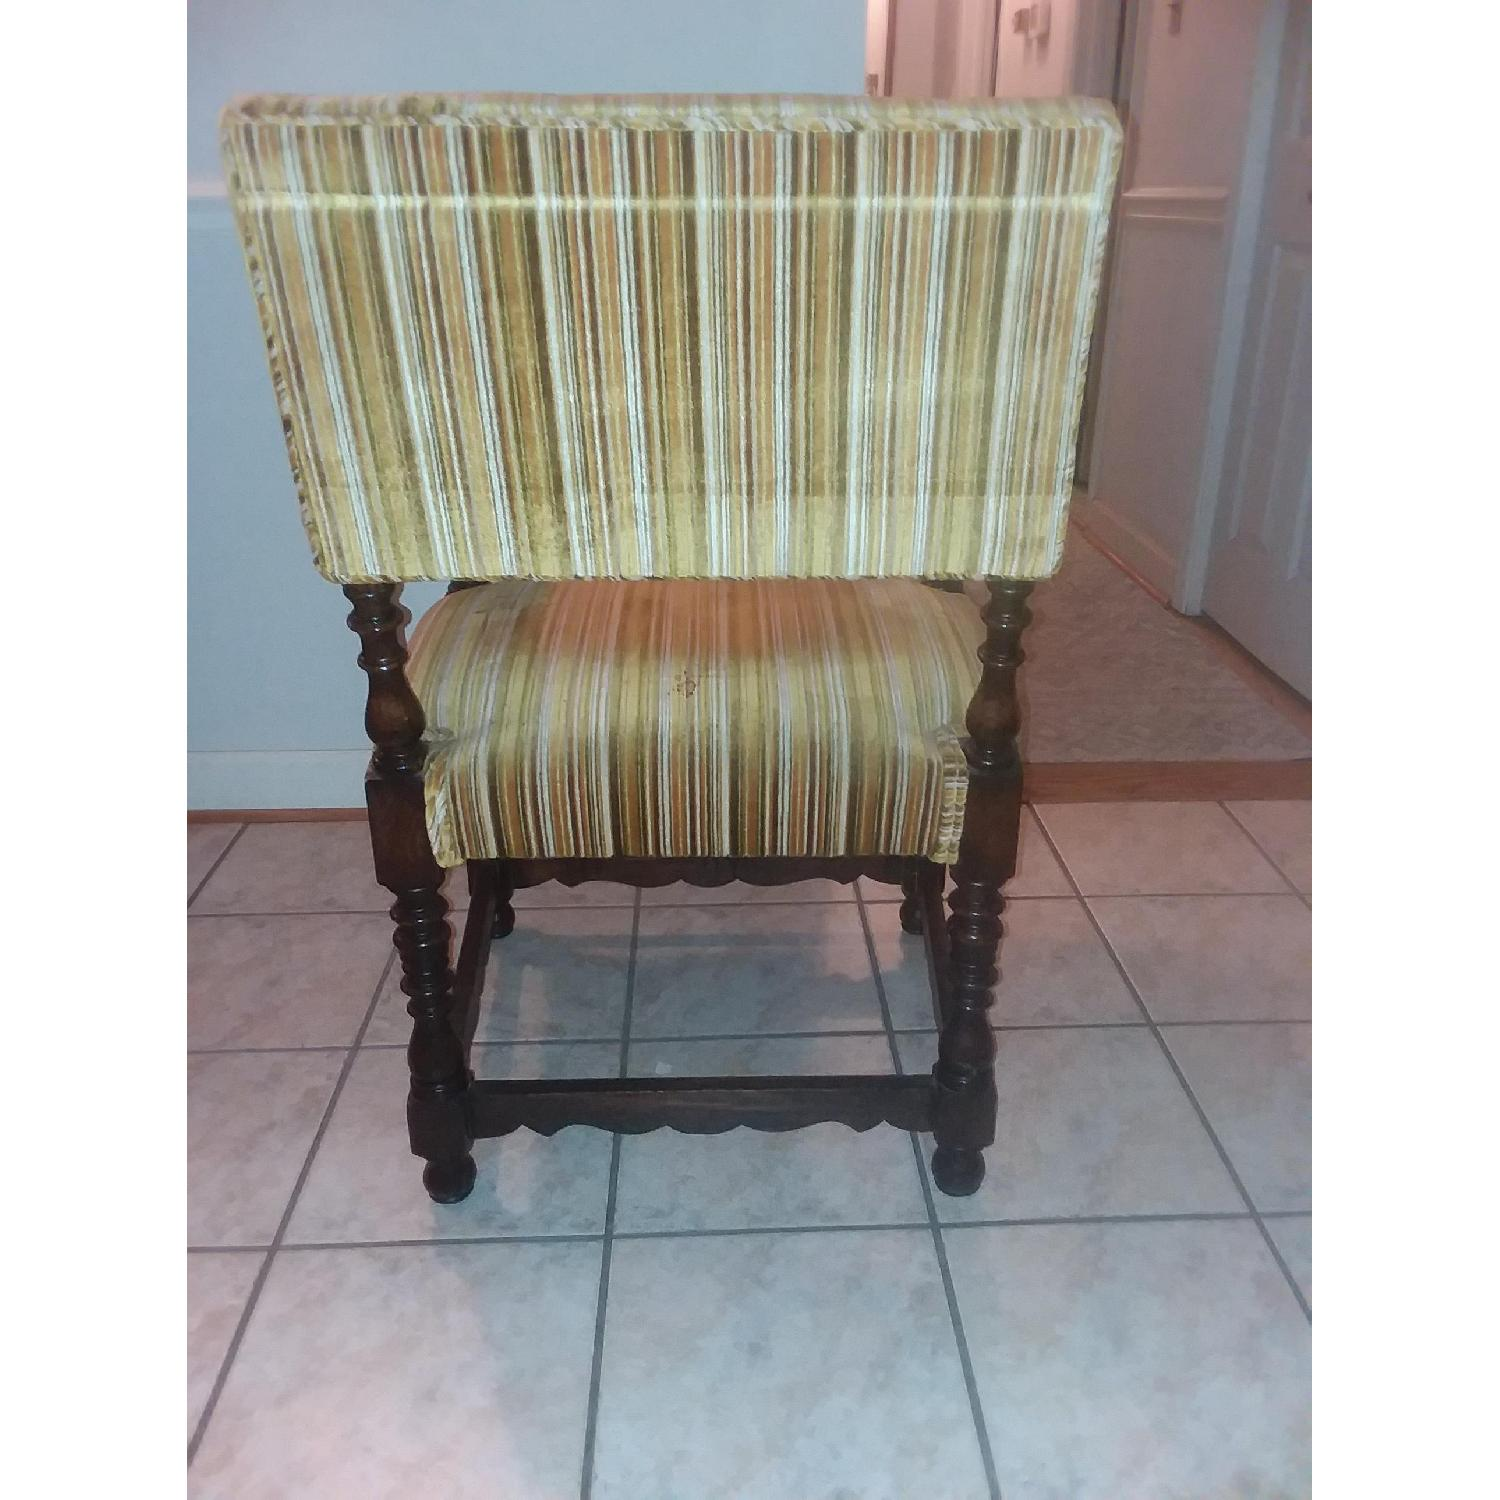 Vintage Provincial Chairs - image-3